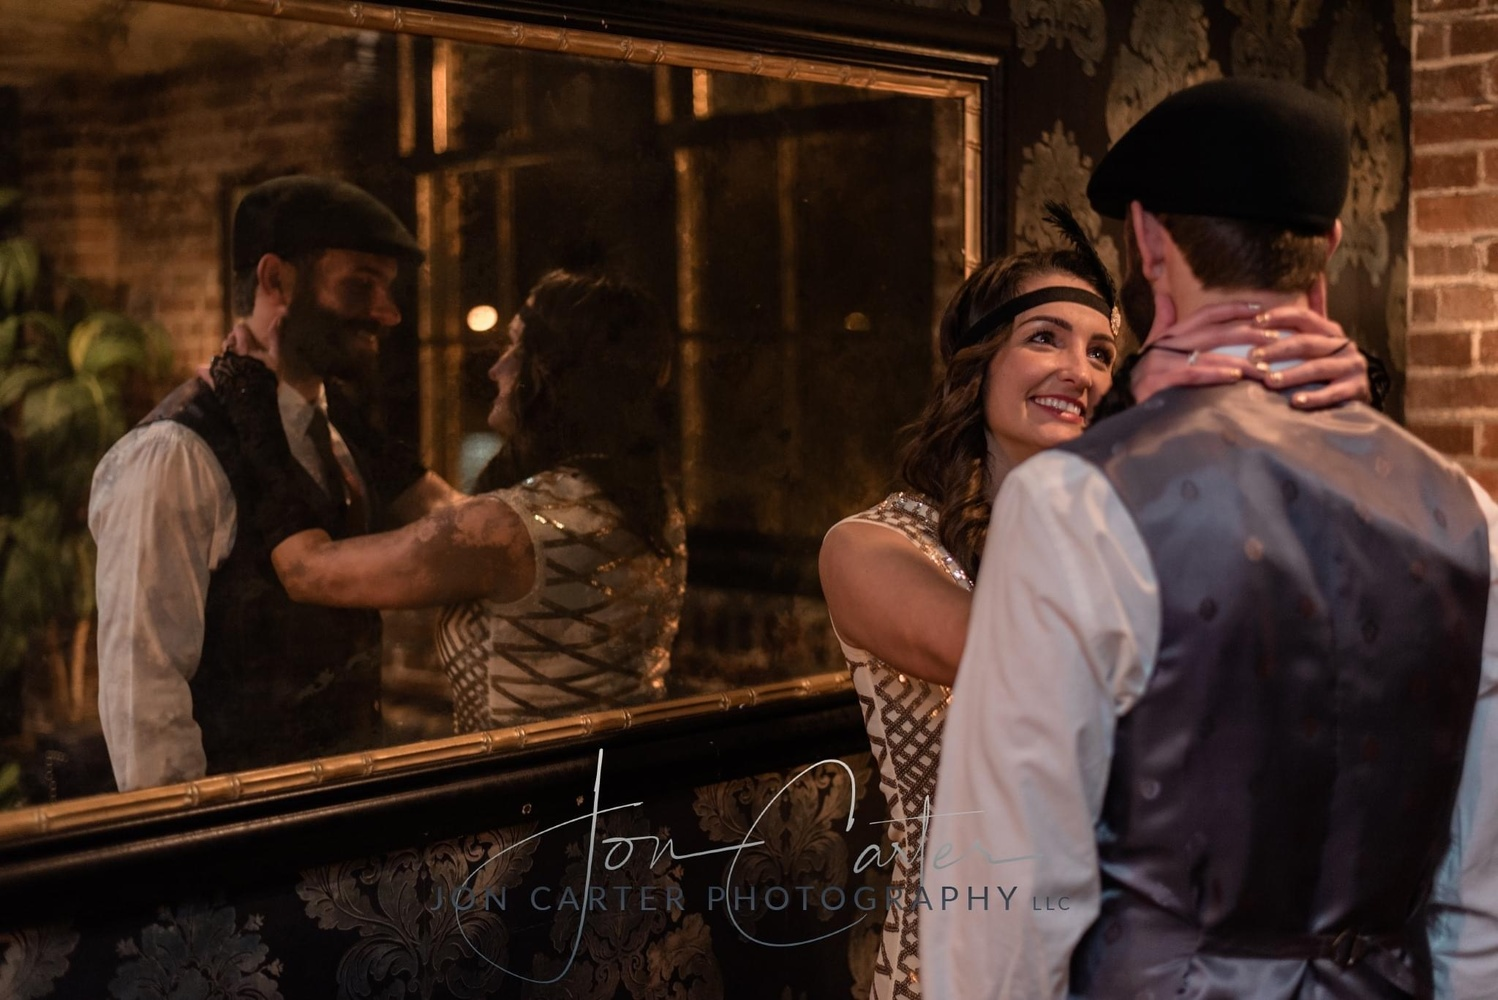 1920's Engagement Party by Jon Carter